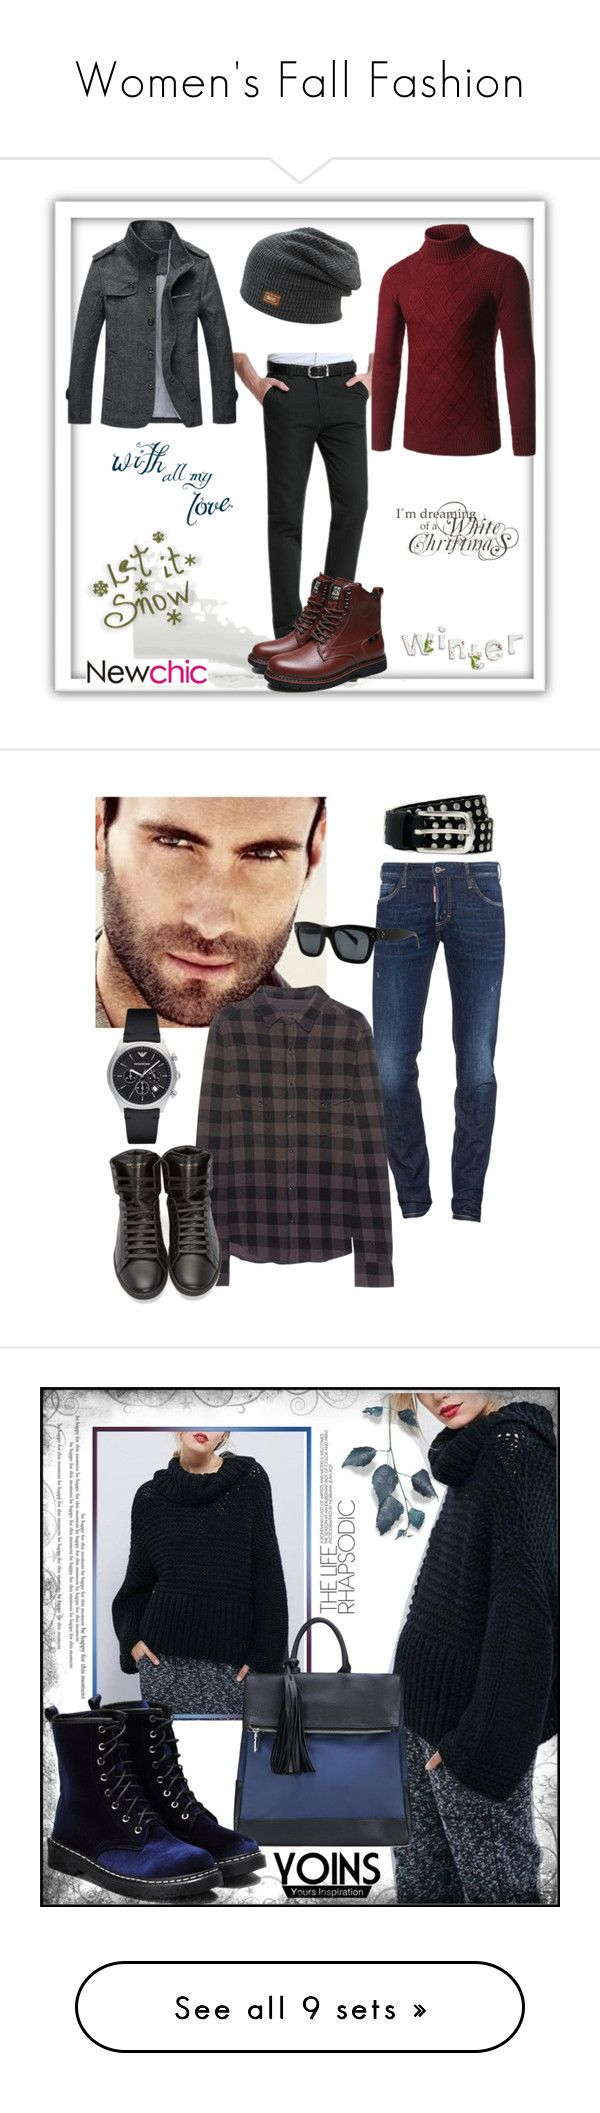 """""""Women's Fall Fashion"""" by belinda54-1 ❤ liked on Polyvore featuring men's fashion, menswear, Adam Levine, Dsquared2, True Religion, Emporio Armani, Yves Saint Laurent, River Island, yoins and loveyoins"""